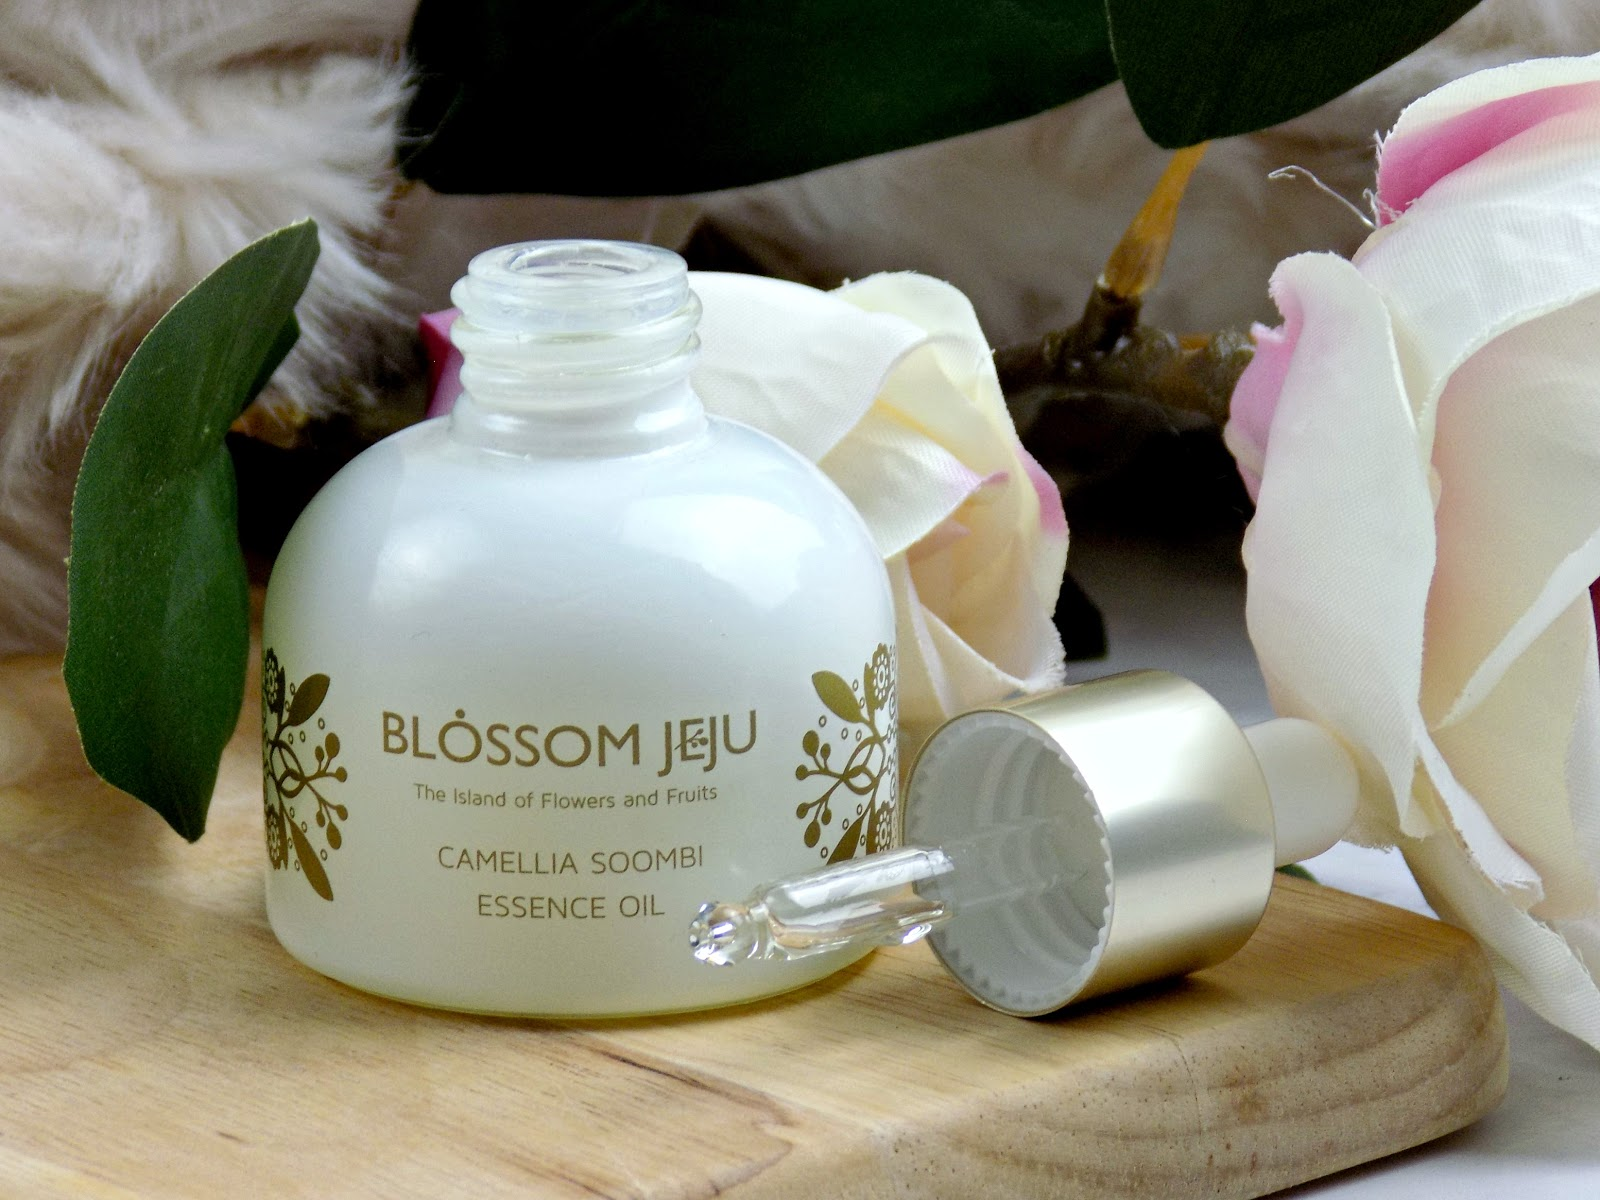 blossom jeju camellia seed oil review